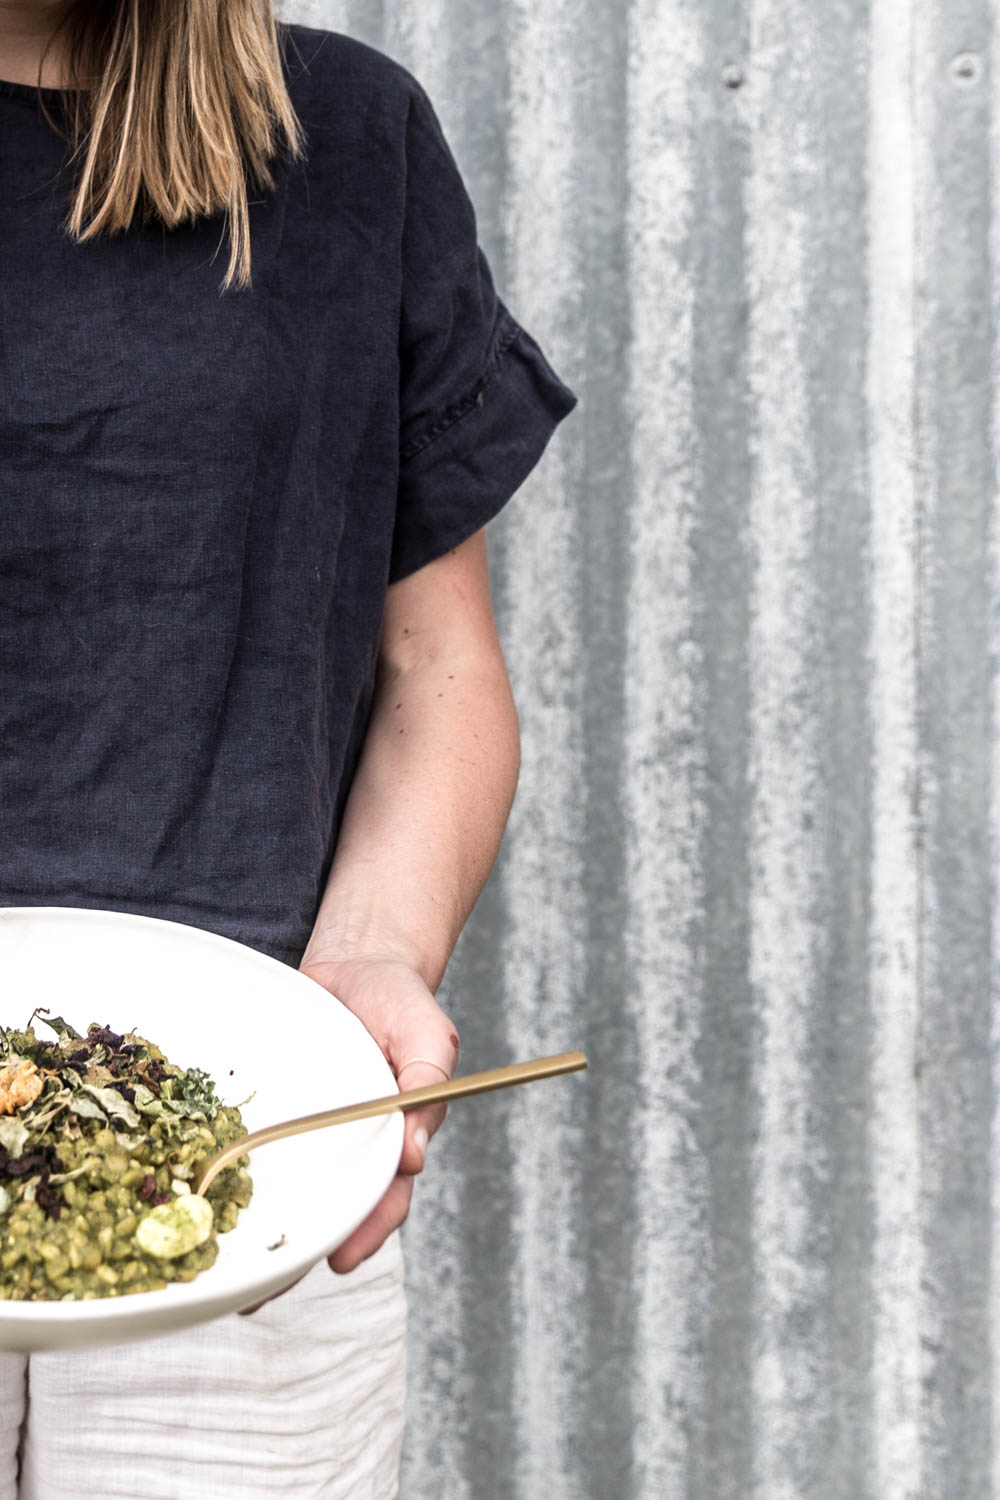 Lean holding the nettle risotto